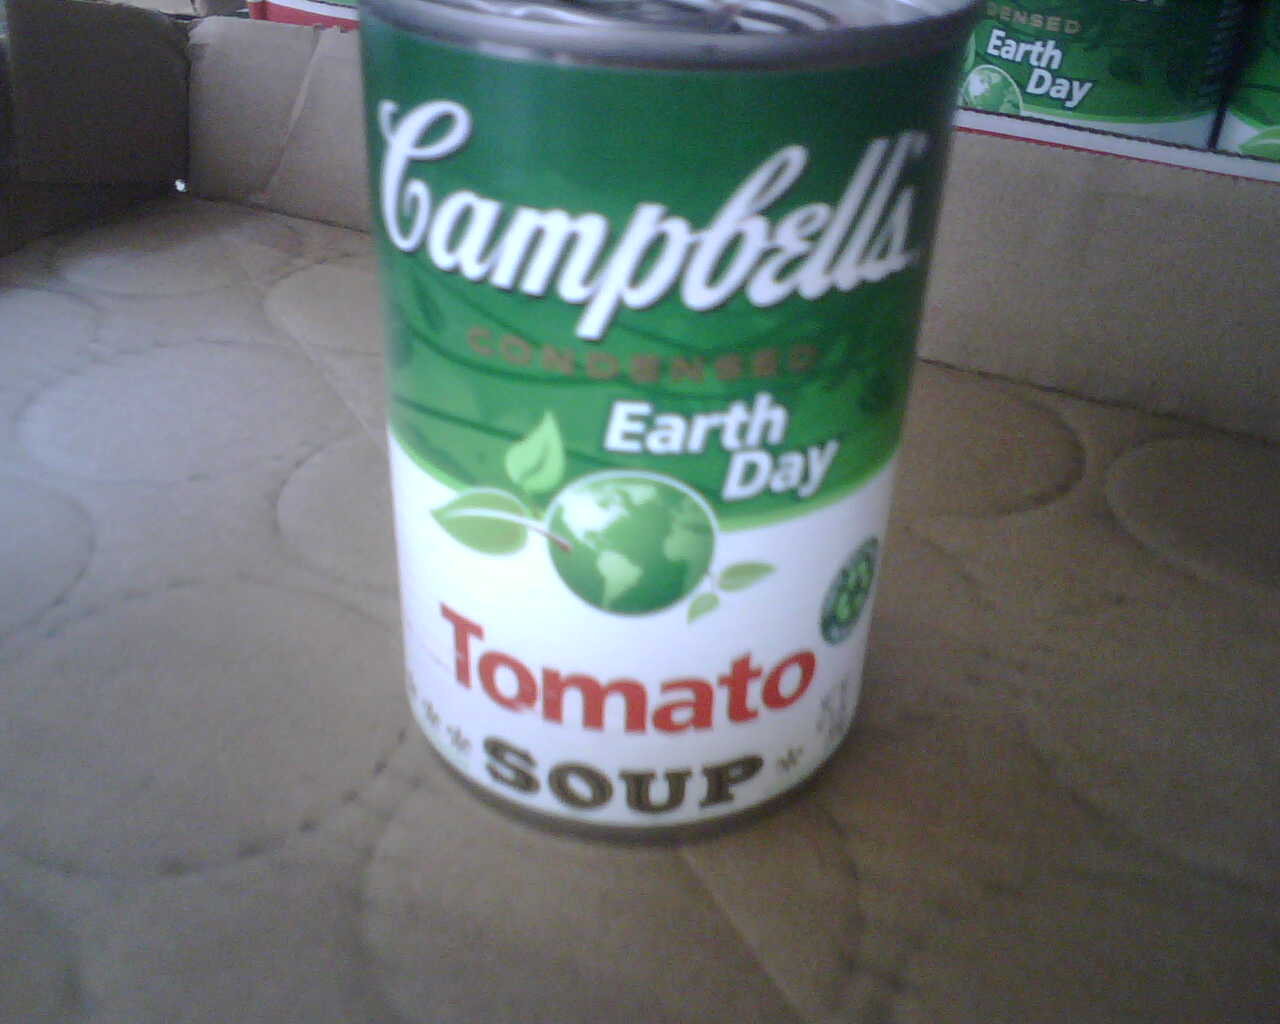 campbell soup green earth day can closeup